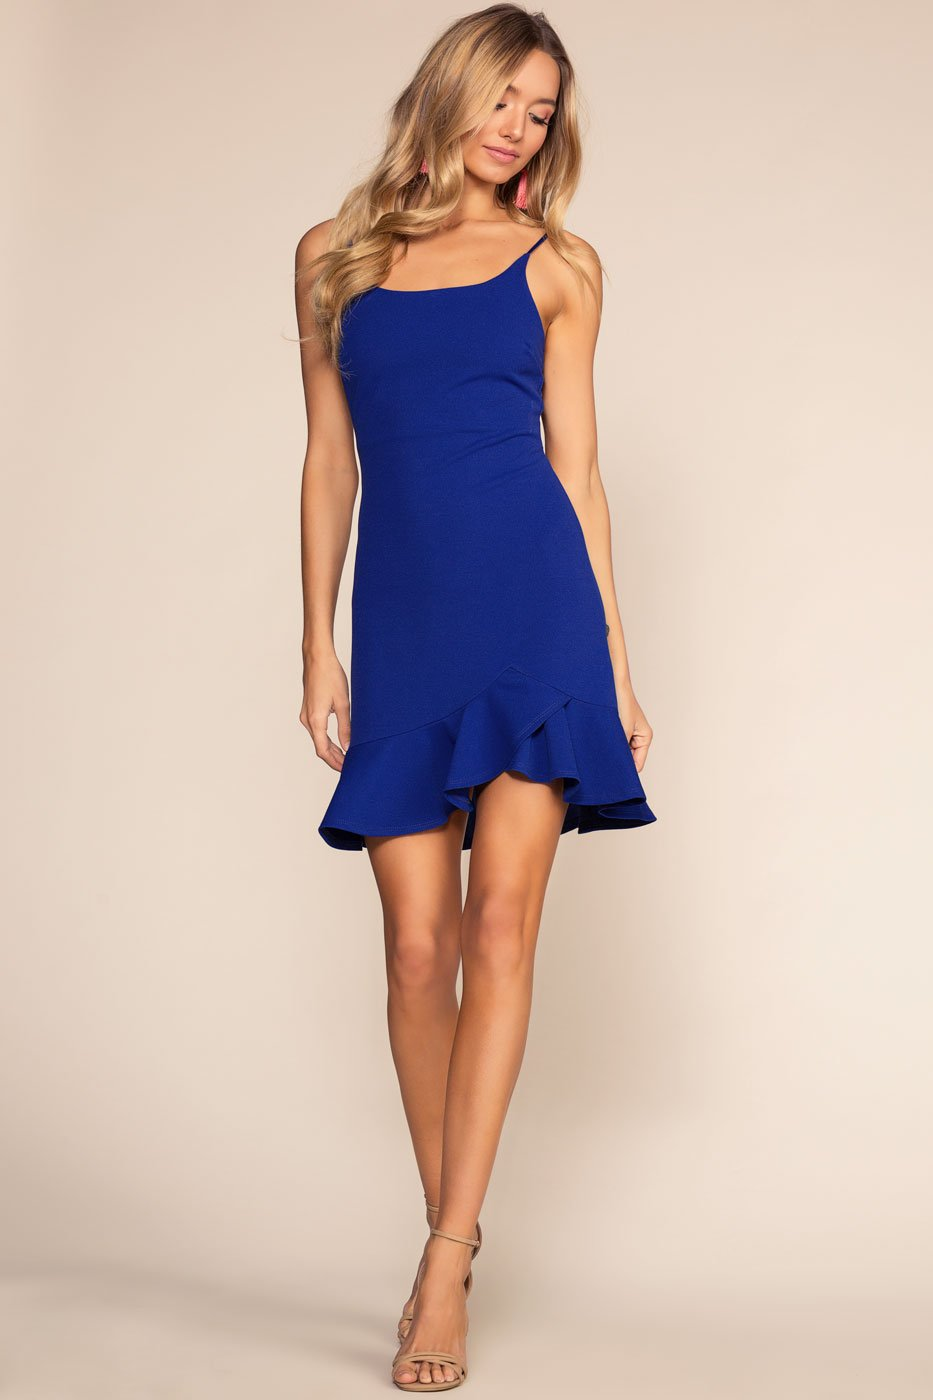 Dresses - Sassafras Bodycon Dress - Royal Blue